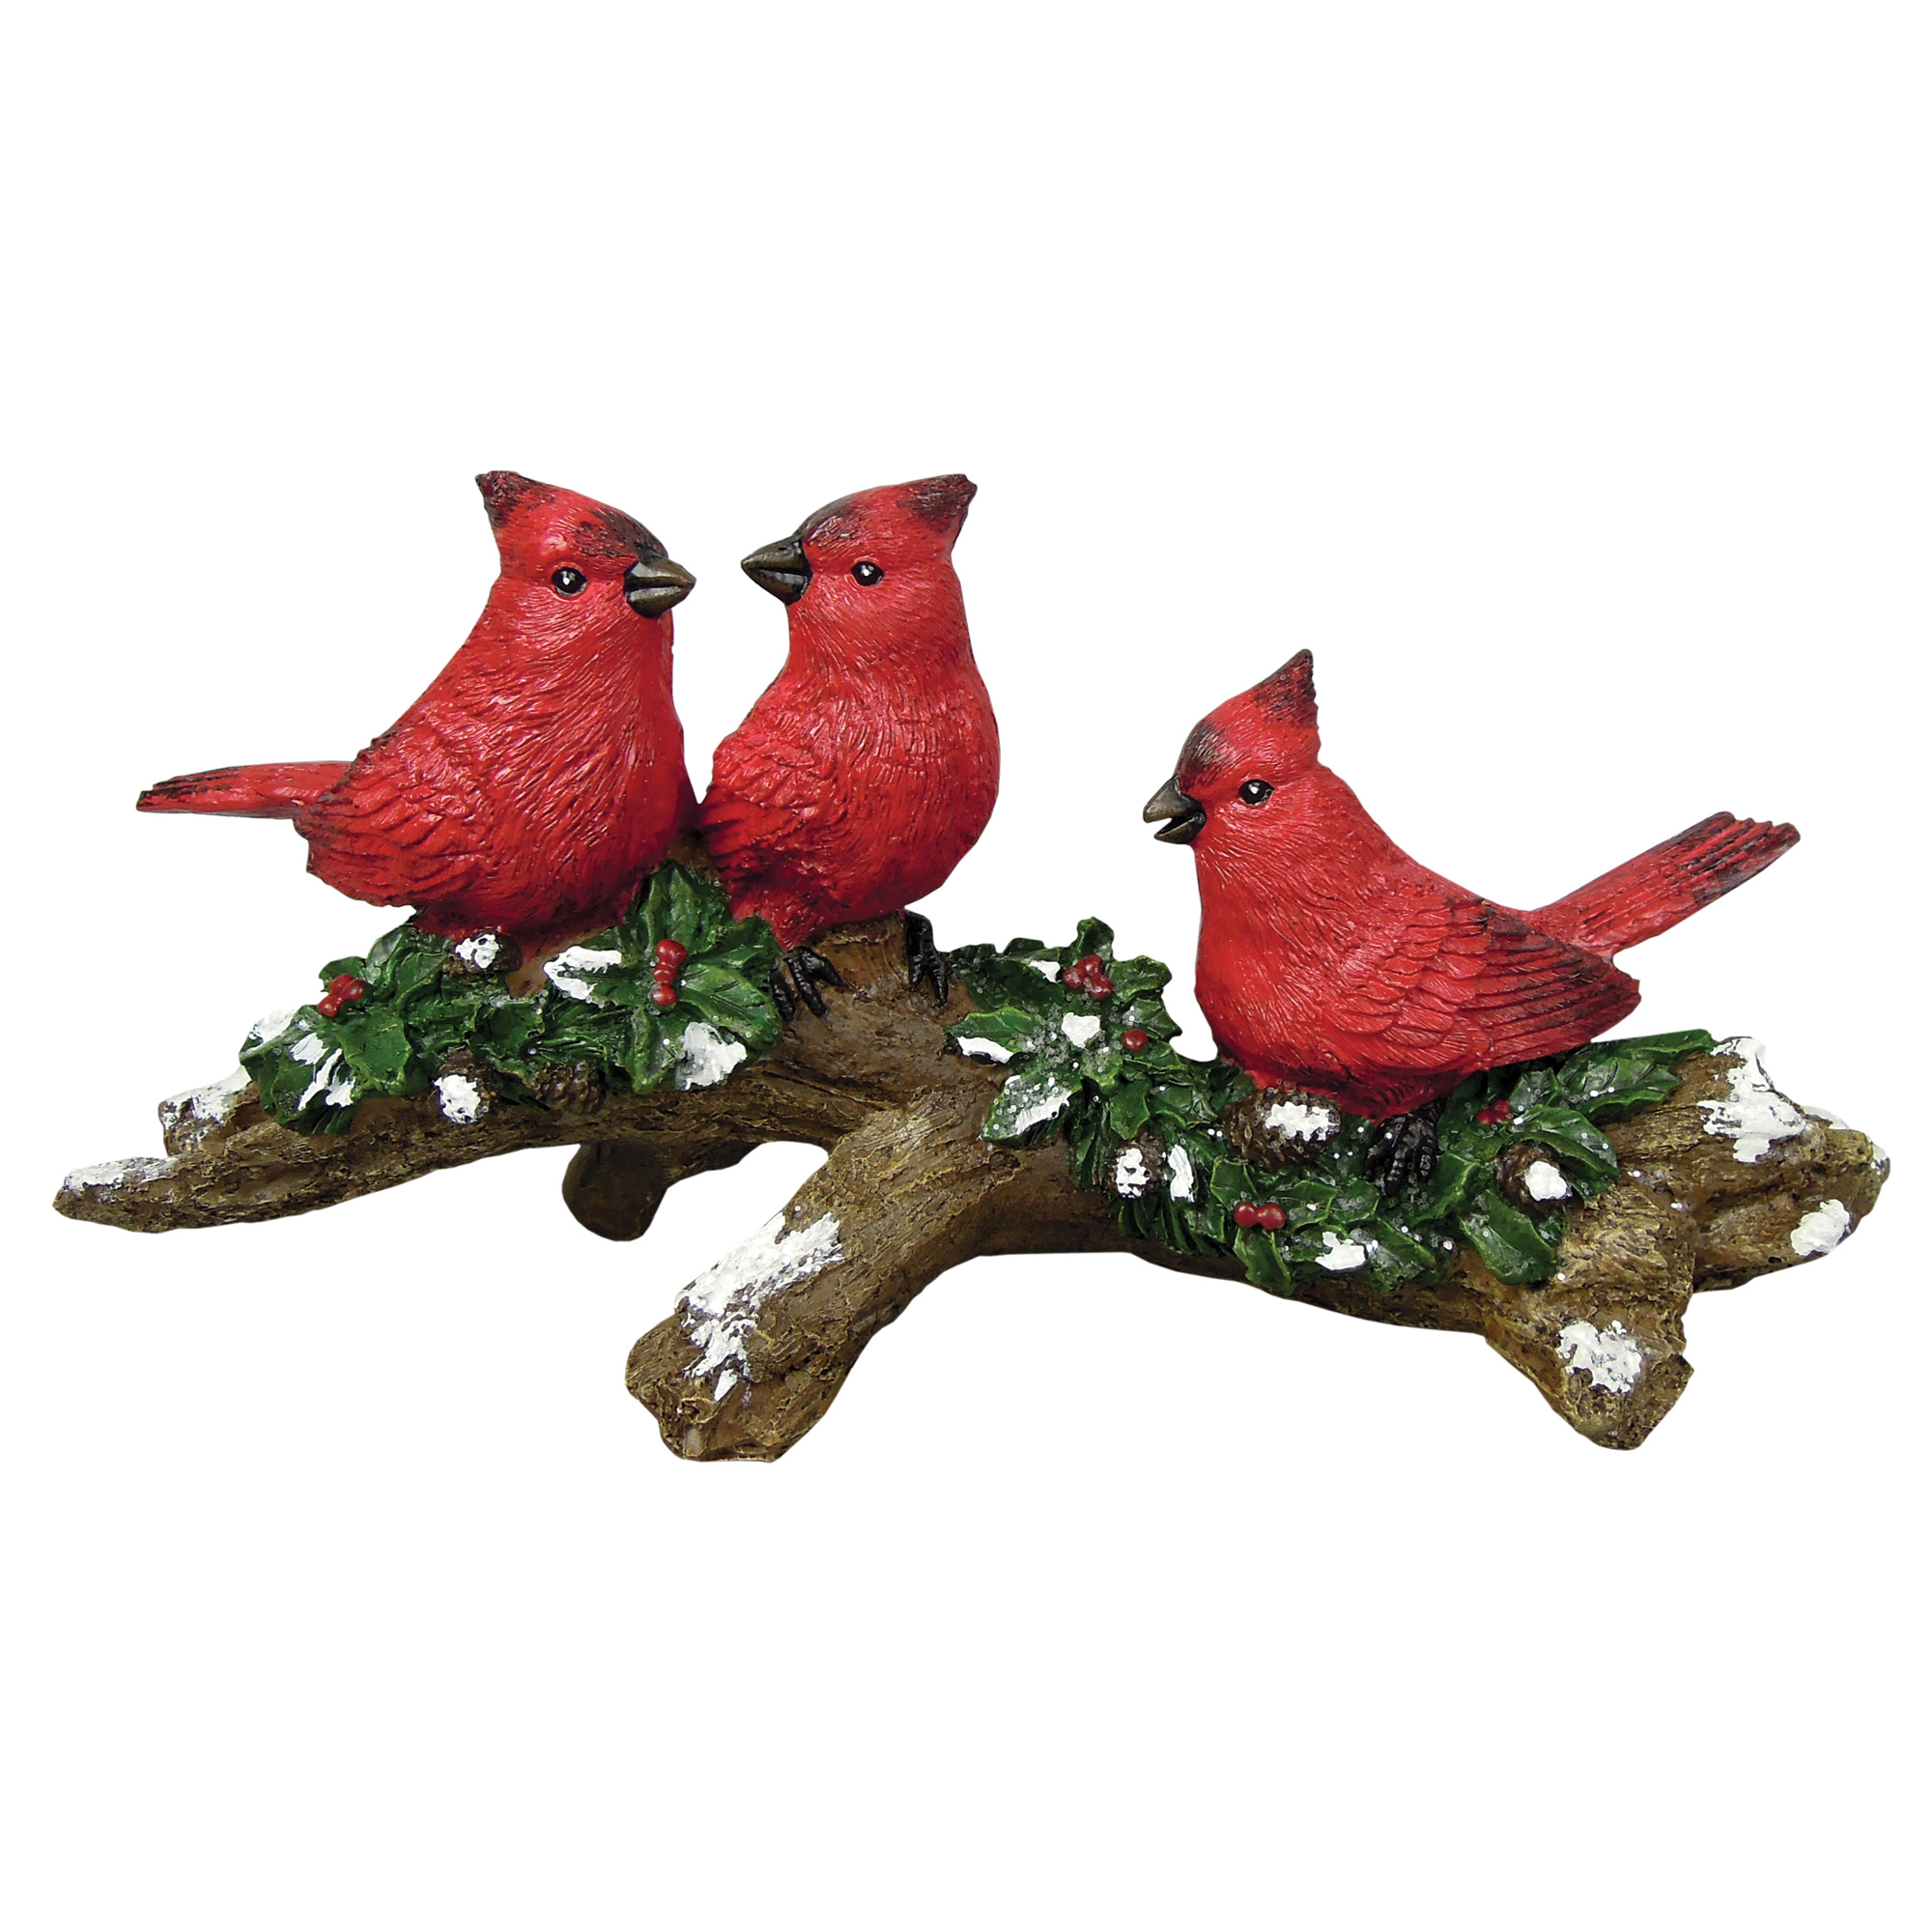 "9.8"" x 13.4"" x 4.75"" CARDINALS ON BRANCH"